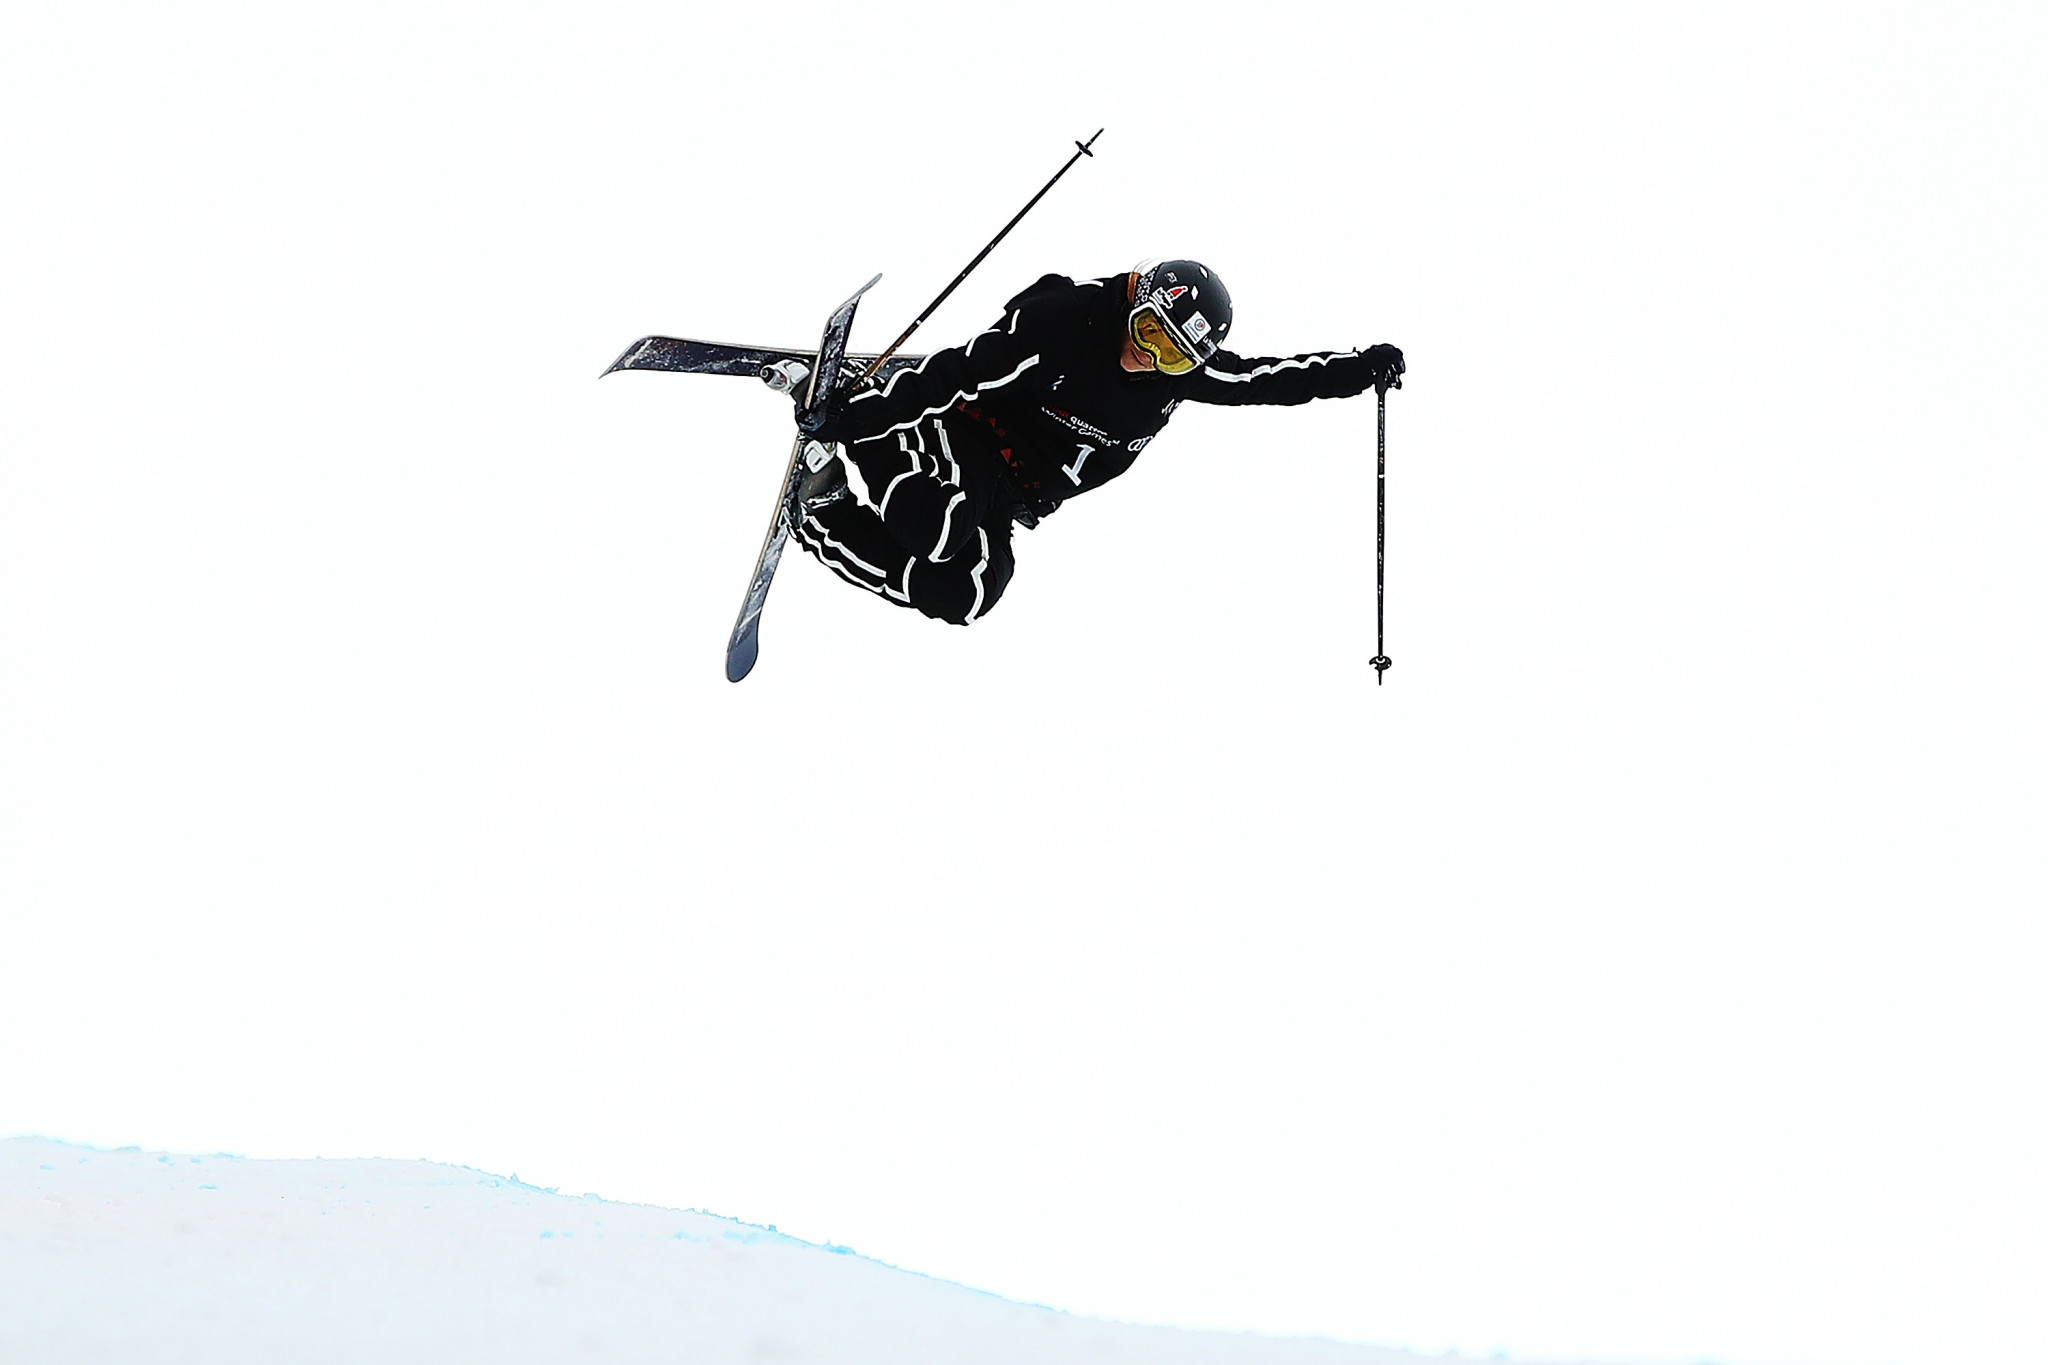 Martinod and Zhang head women's halfpipe qualifying at Copper Mountain